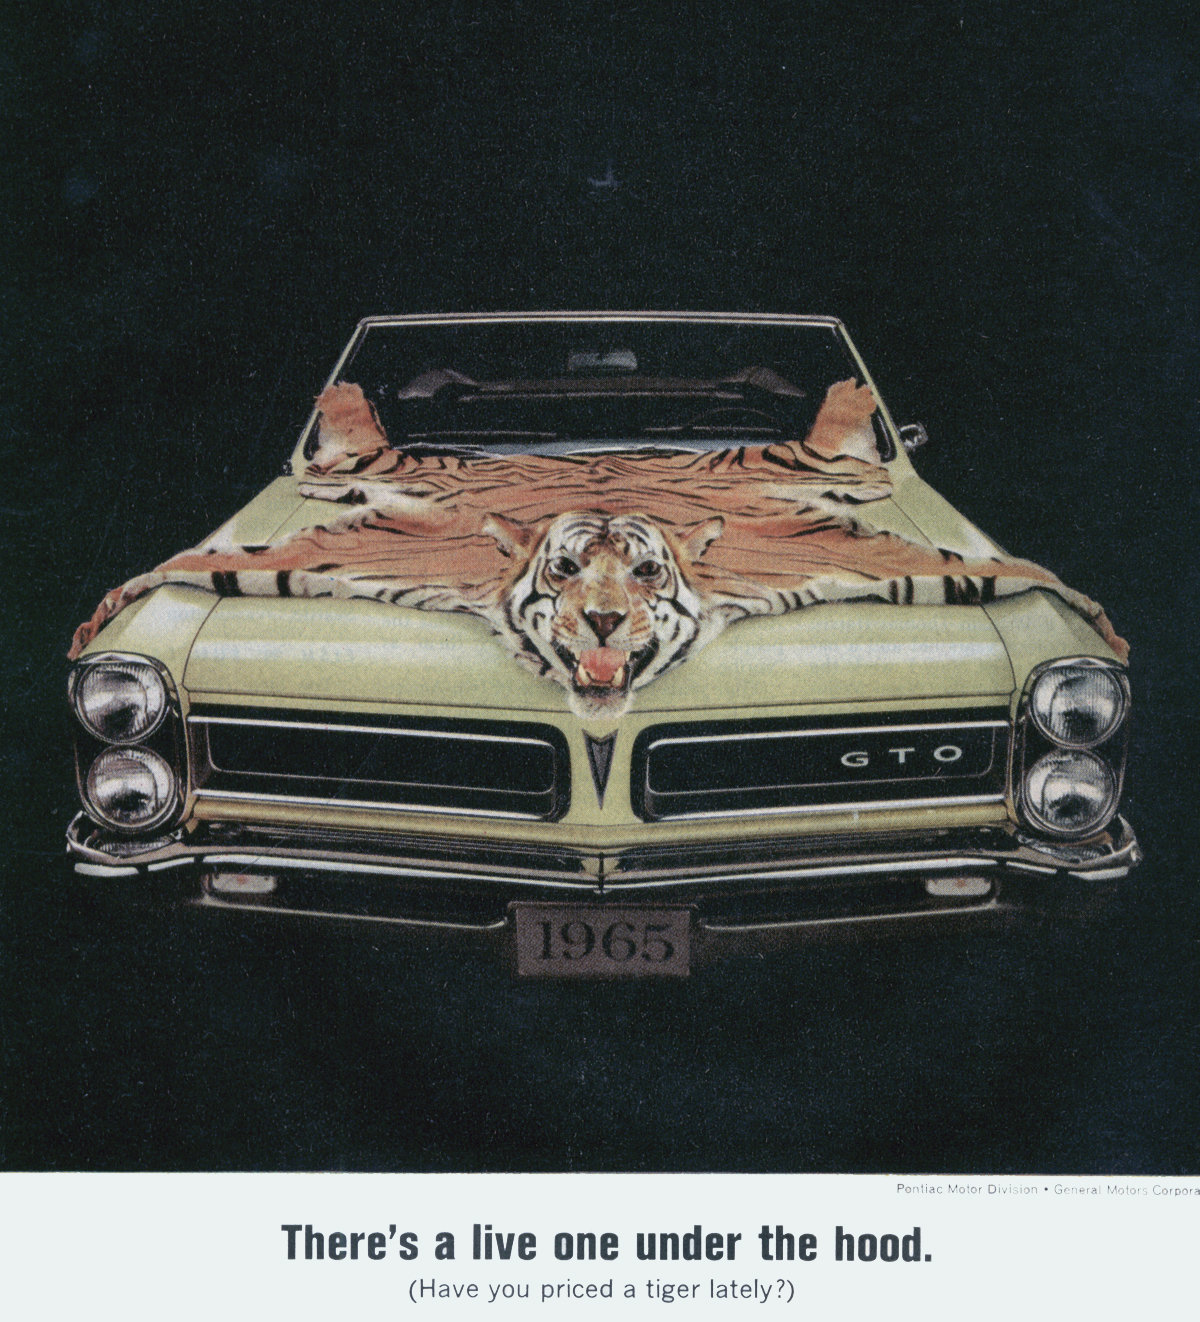 Promofile Crouching Tiger Hidden Burnoutsgto Ads In The 1960s 1960 Pontiac Catalina Wiring Diagrams Gto And Appeared Vivid Form 1965 With A Startling Picture Of Mayfair Maize Convertible Black Morrokide Interior Skin